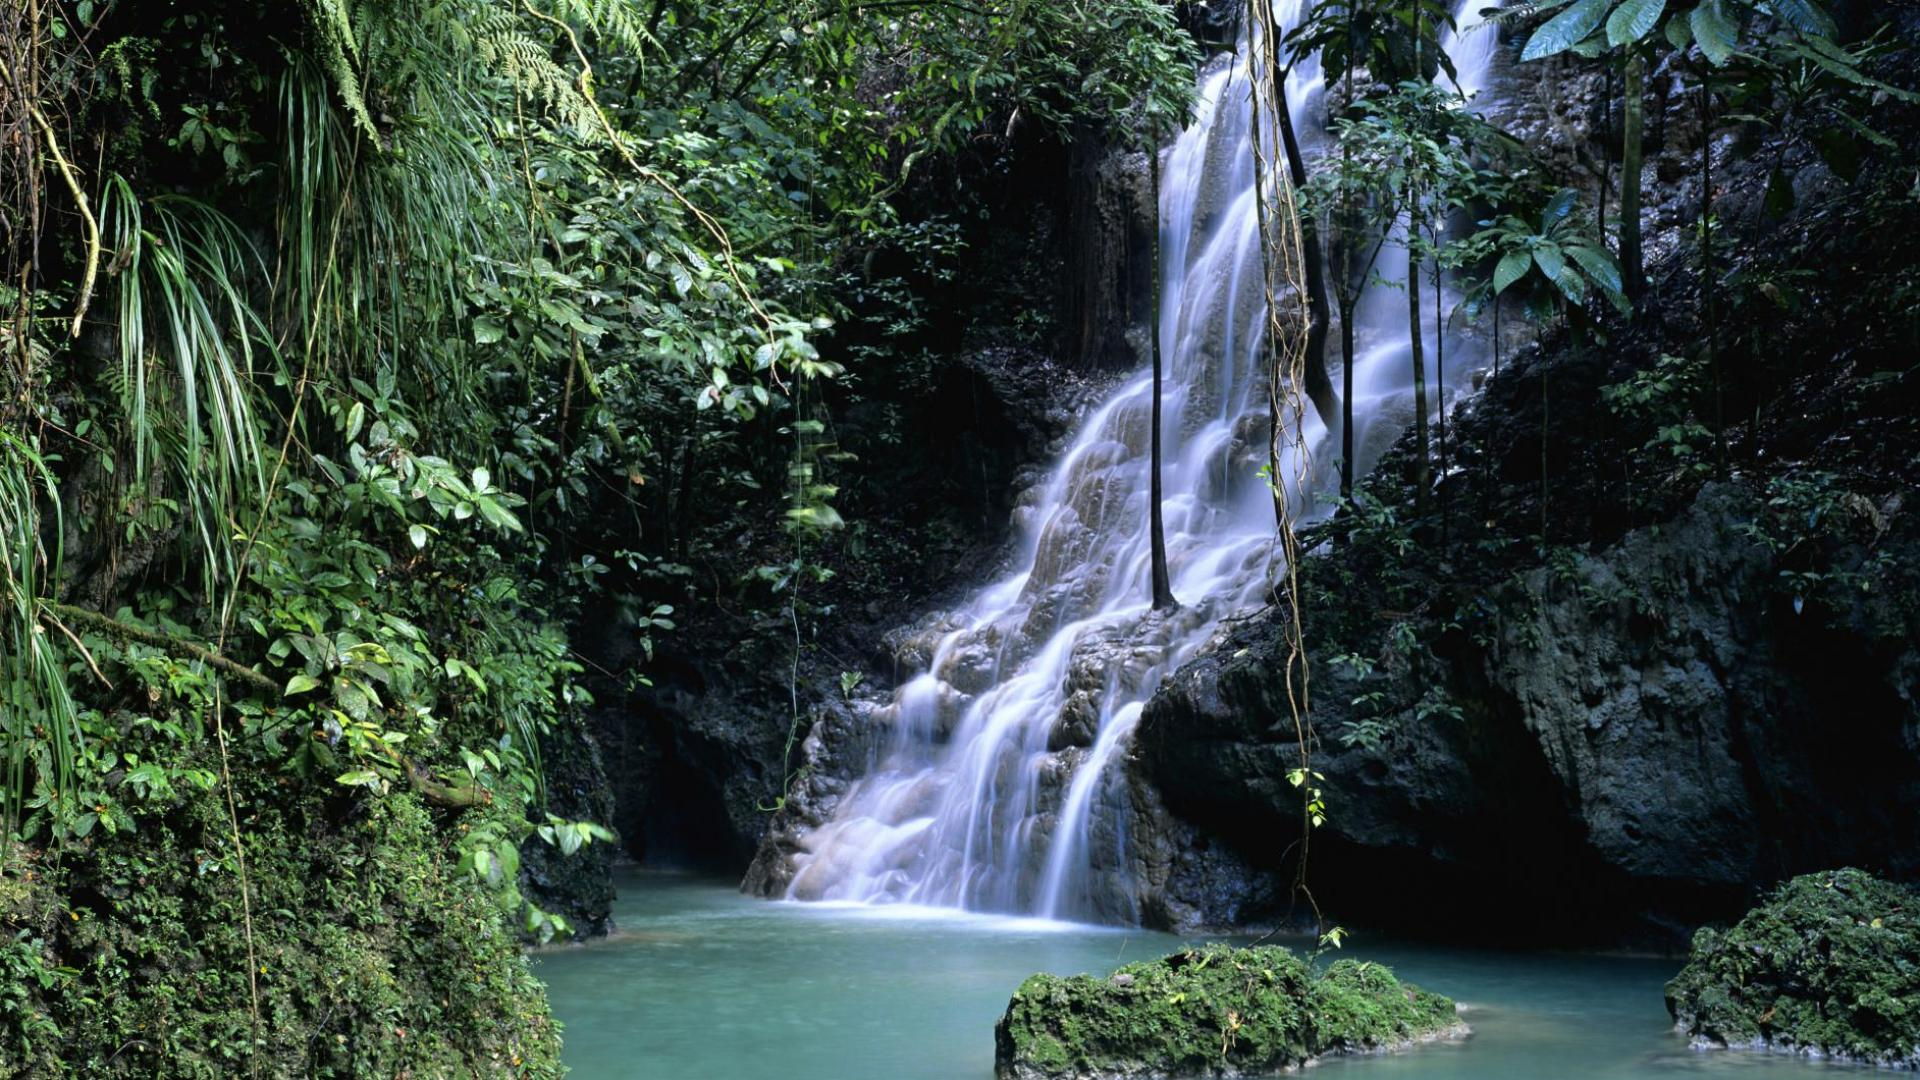 Ein wasserfall im regenwald 1920x1080 wallpaper pictures for desktop picture to pin on pinterest - Wallpaper pictures ...